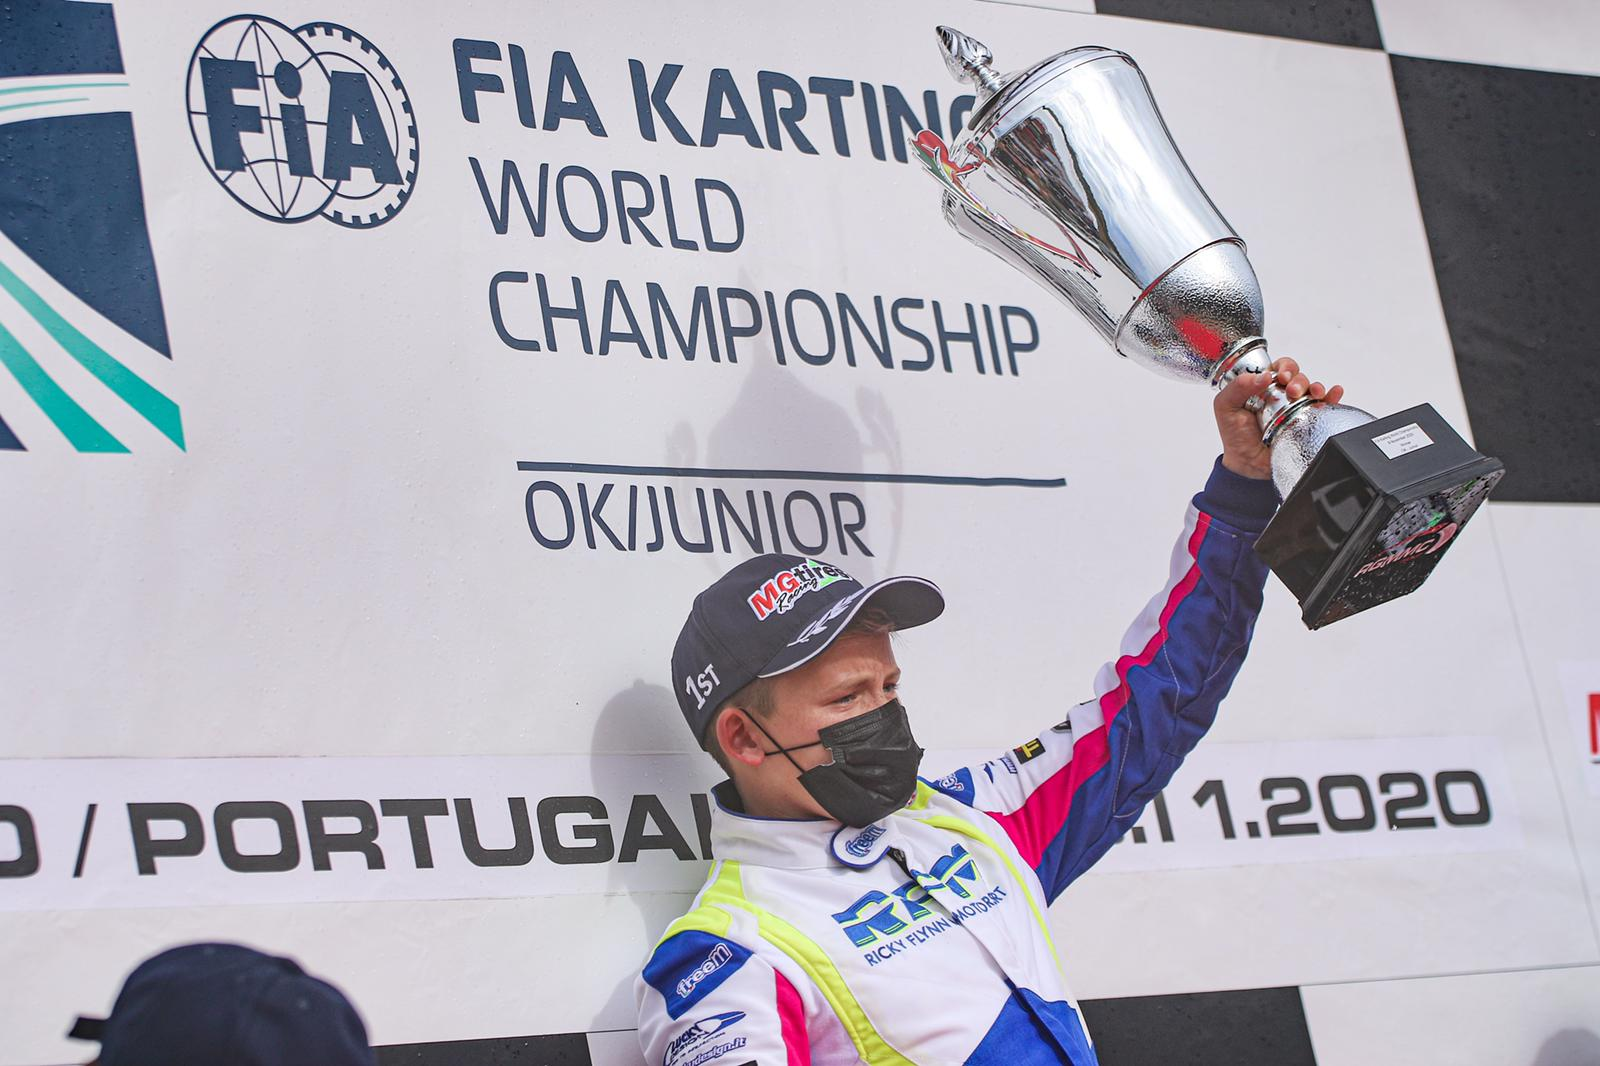 FIA Karting World Championship, Portimao - Bradshaw and Slater Champions, fear in OK